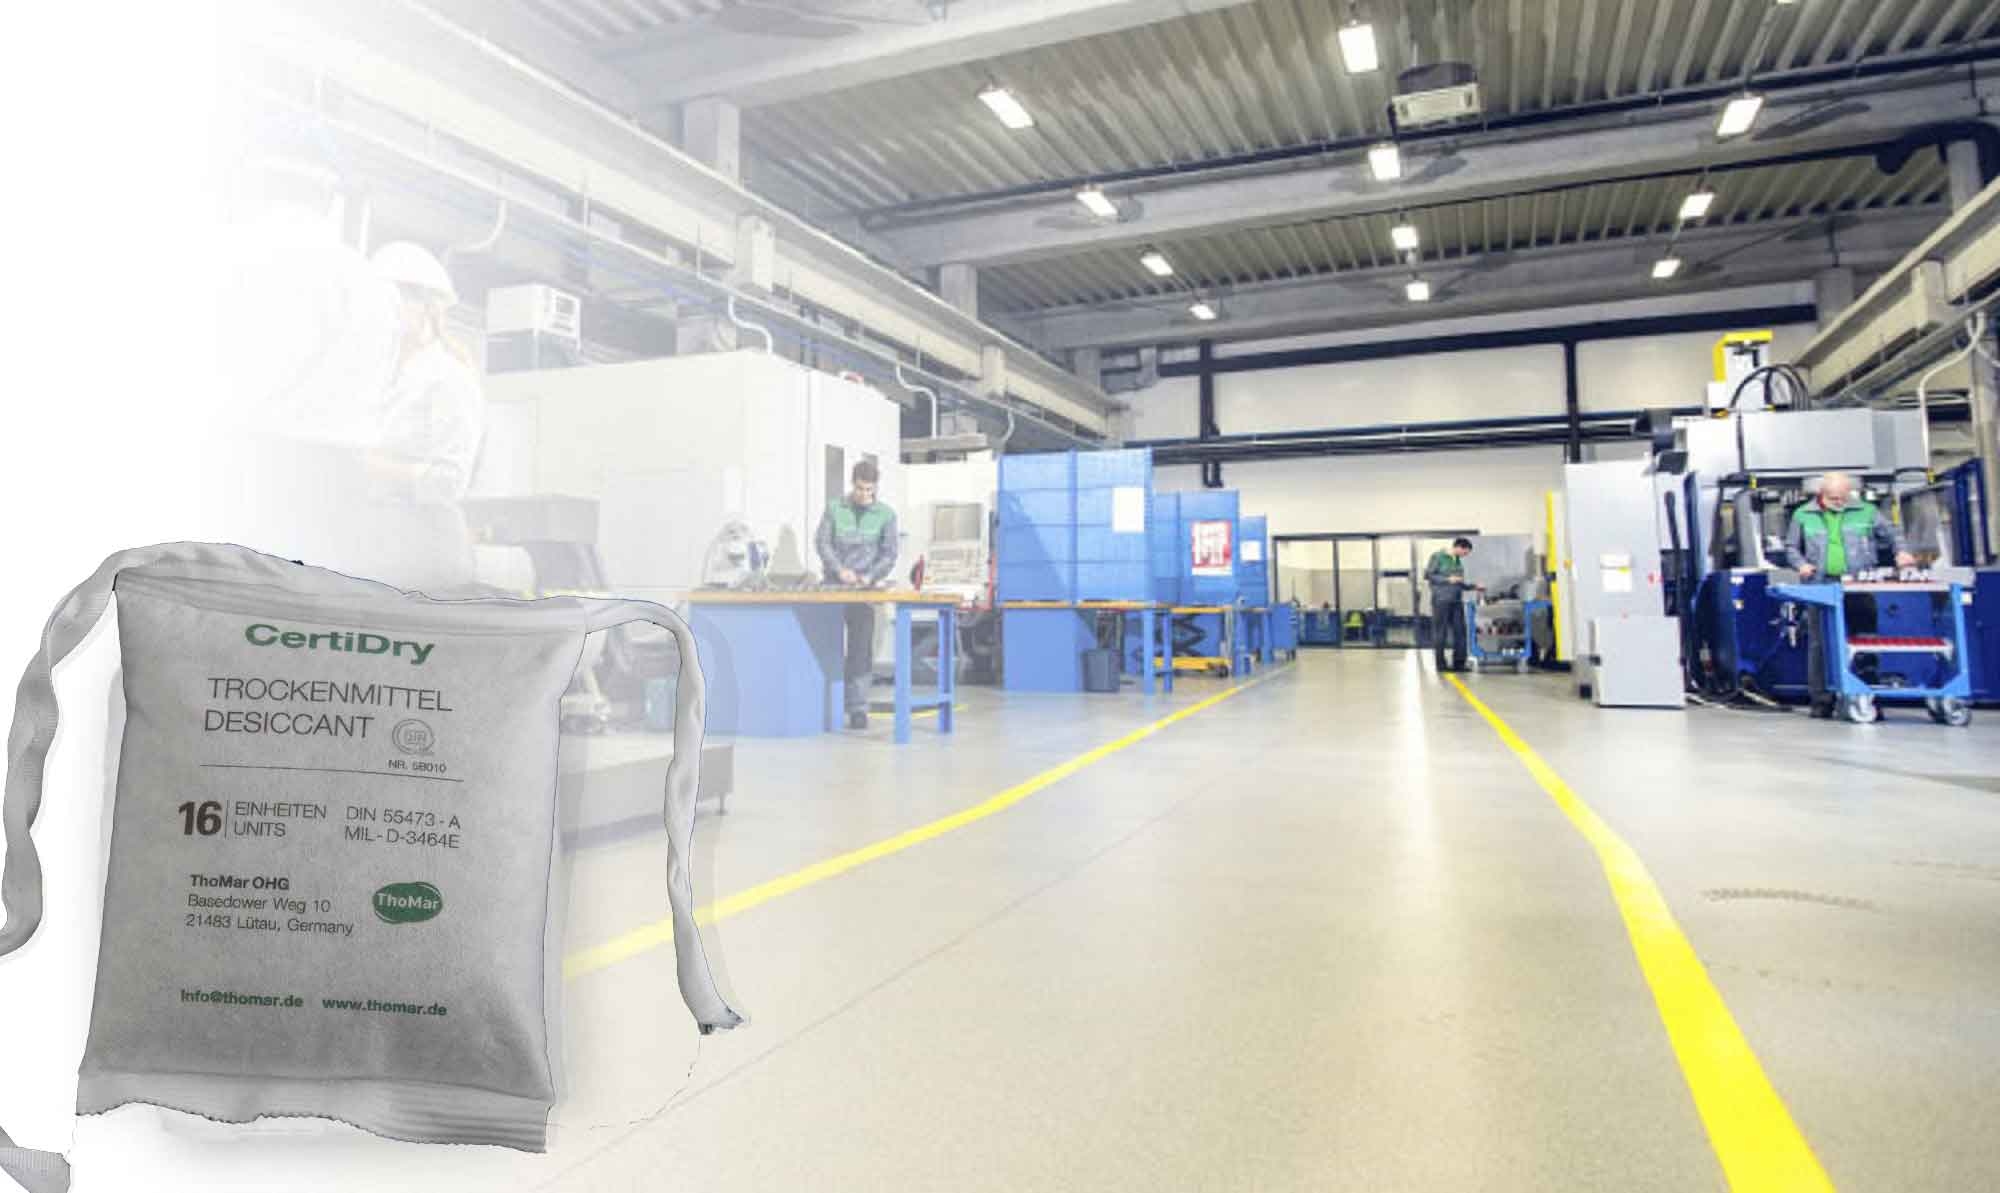 Image DIN desiccant pouch in a workshop